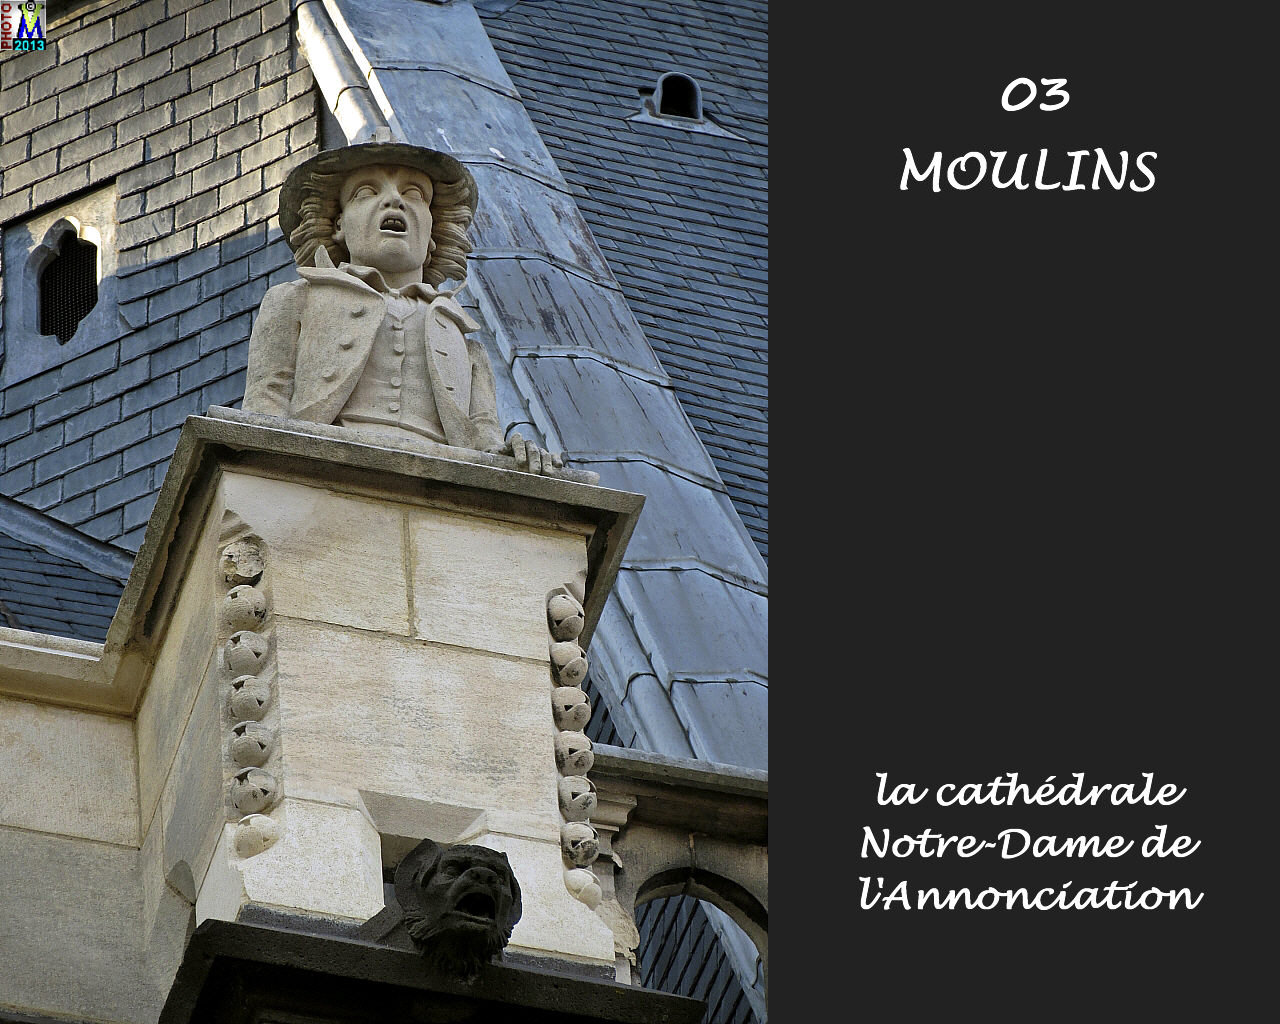 03MOULINS_cathedrale_134.jpg